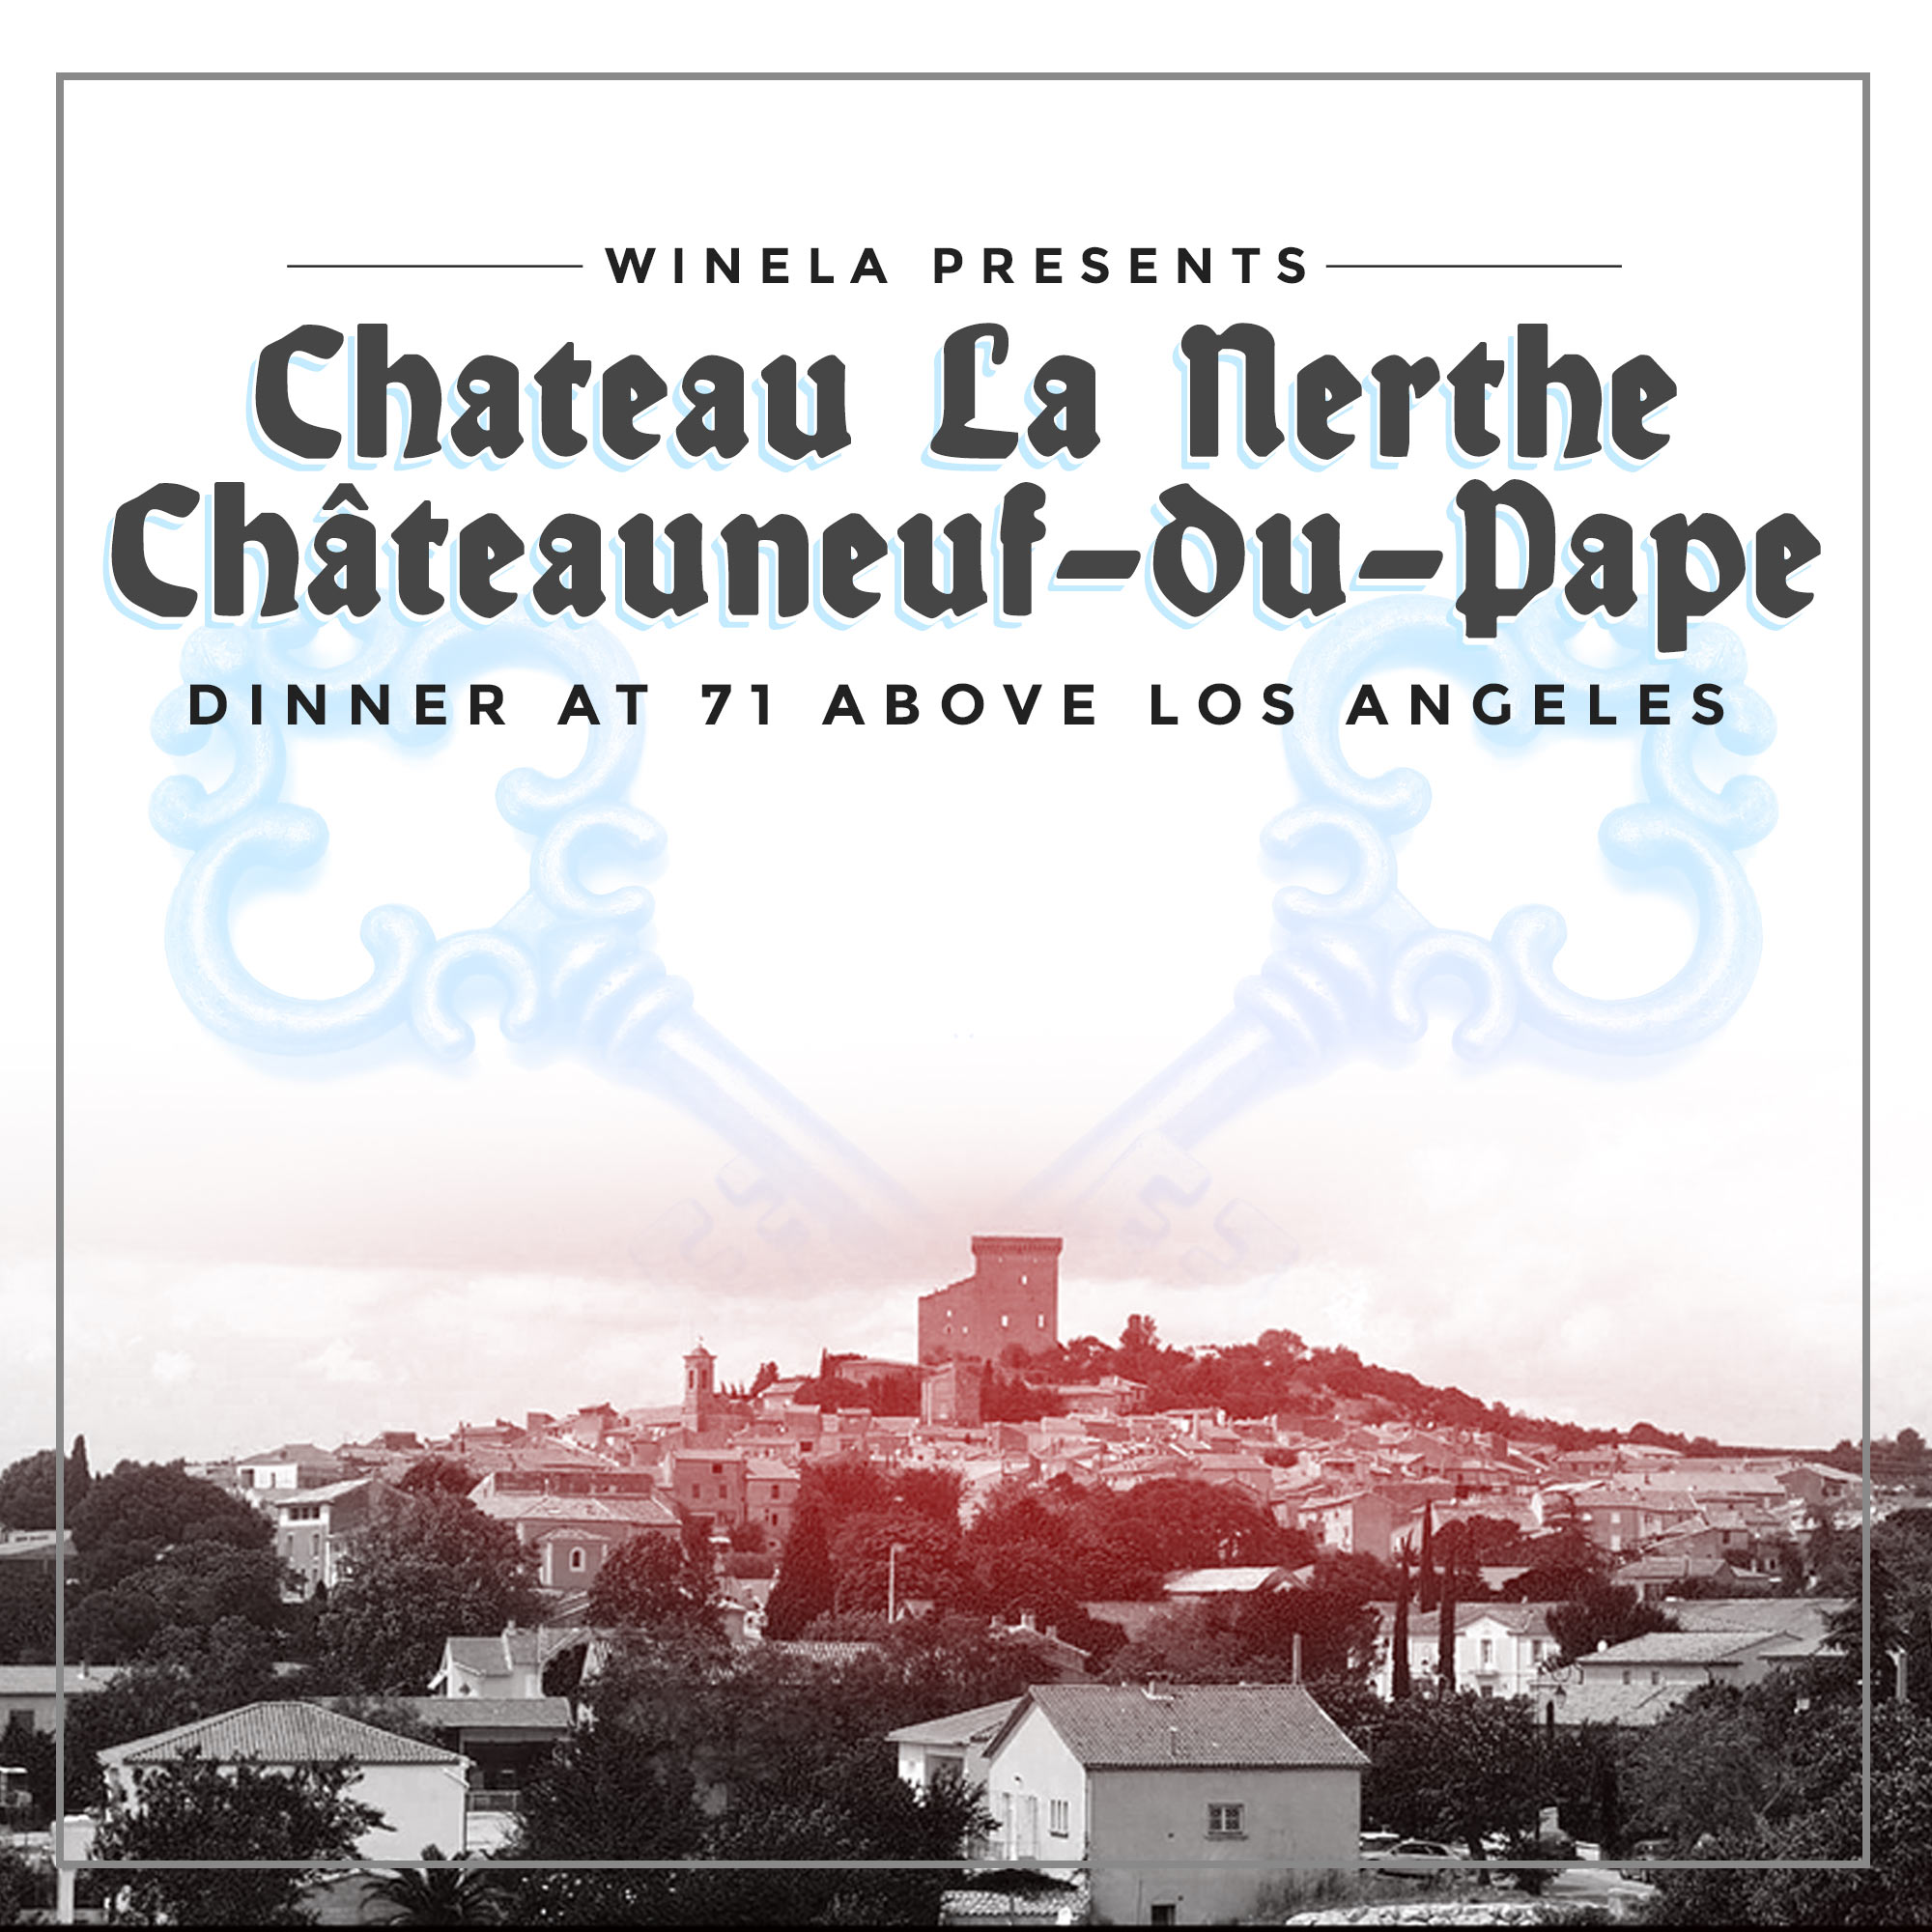 Chateau la Nerthe Chateauneuf-du-Pape Dinner  71 Above, Los Angeles May 3, 2018